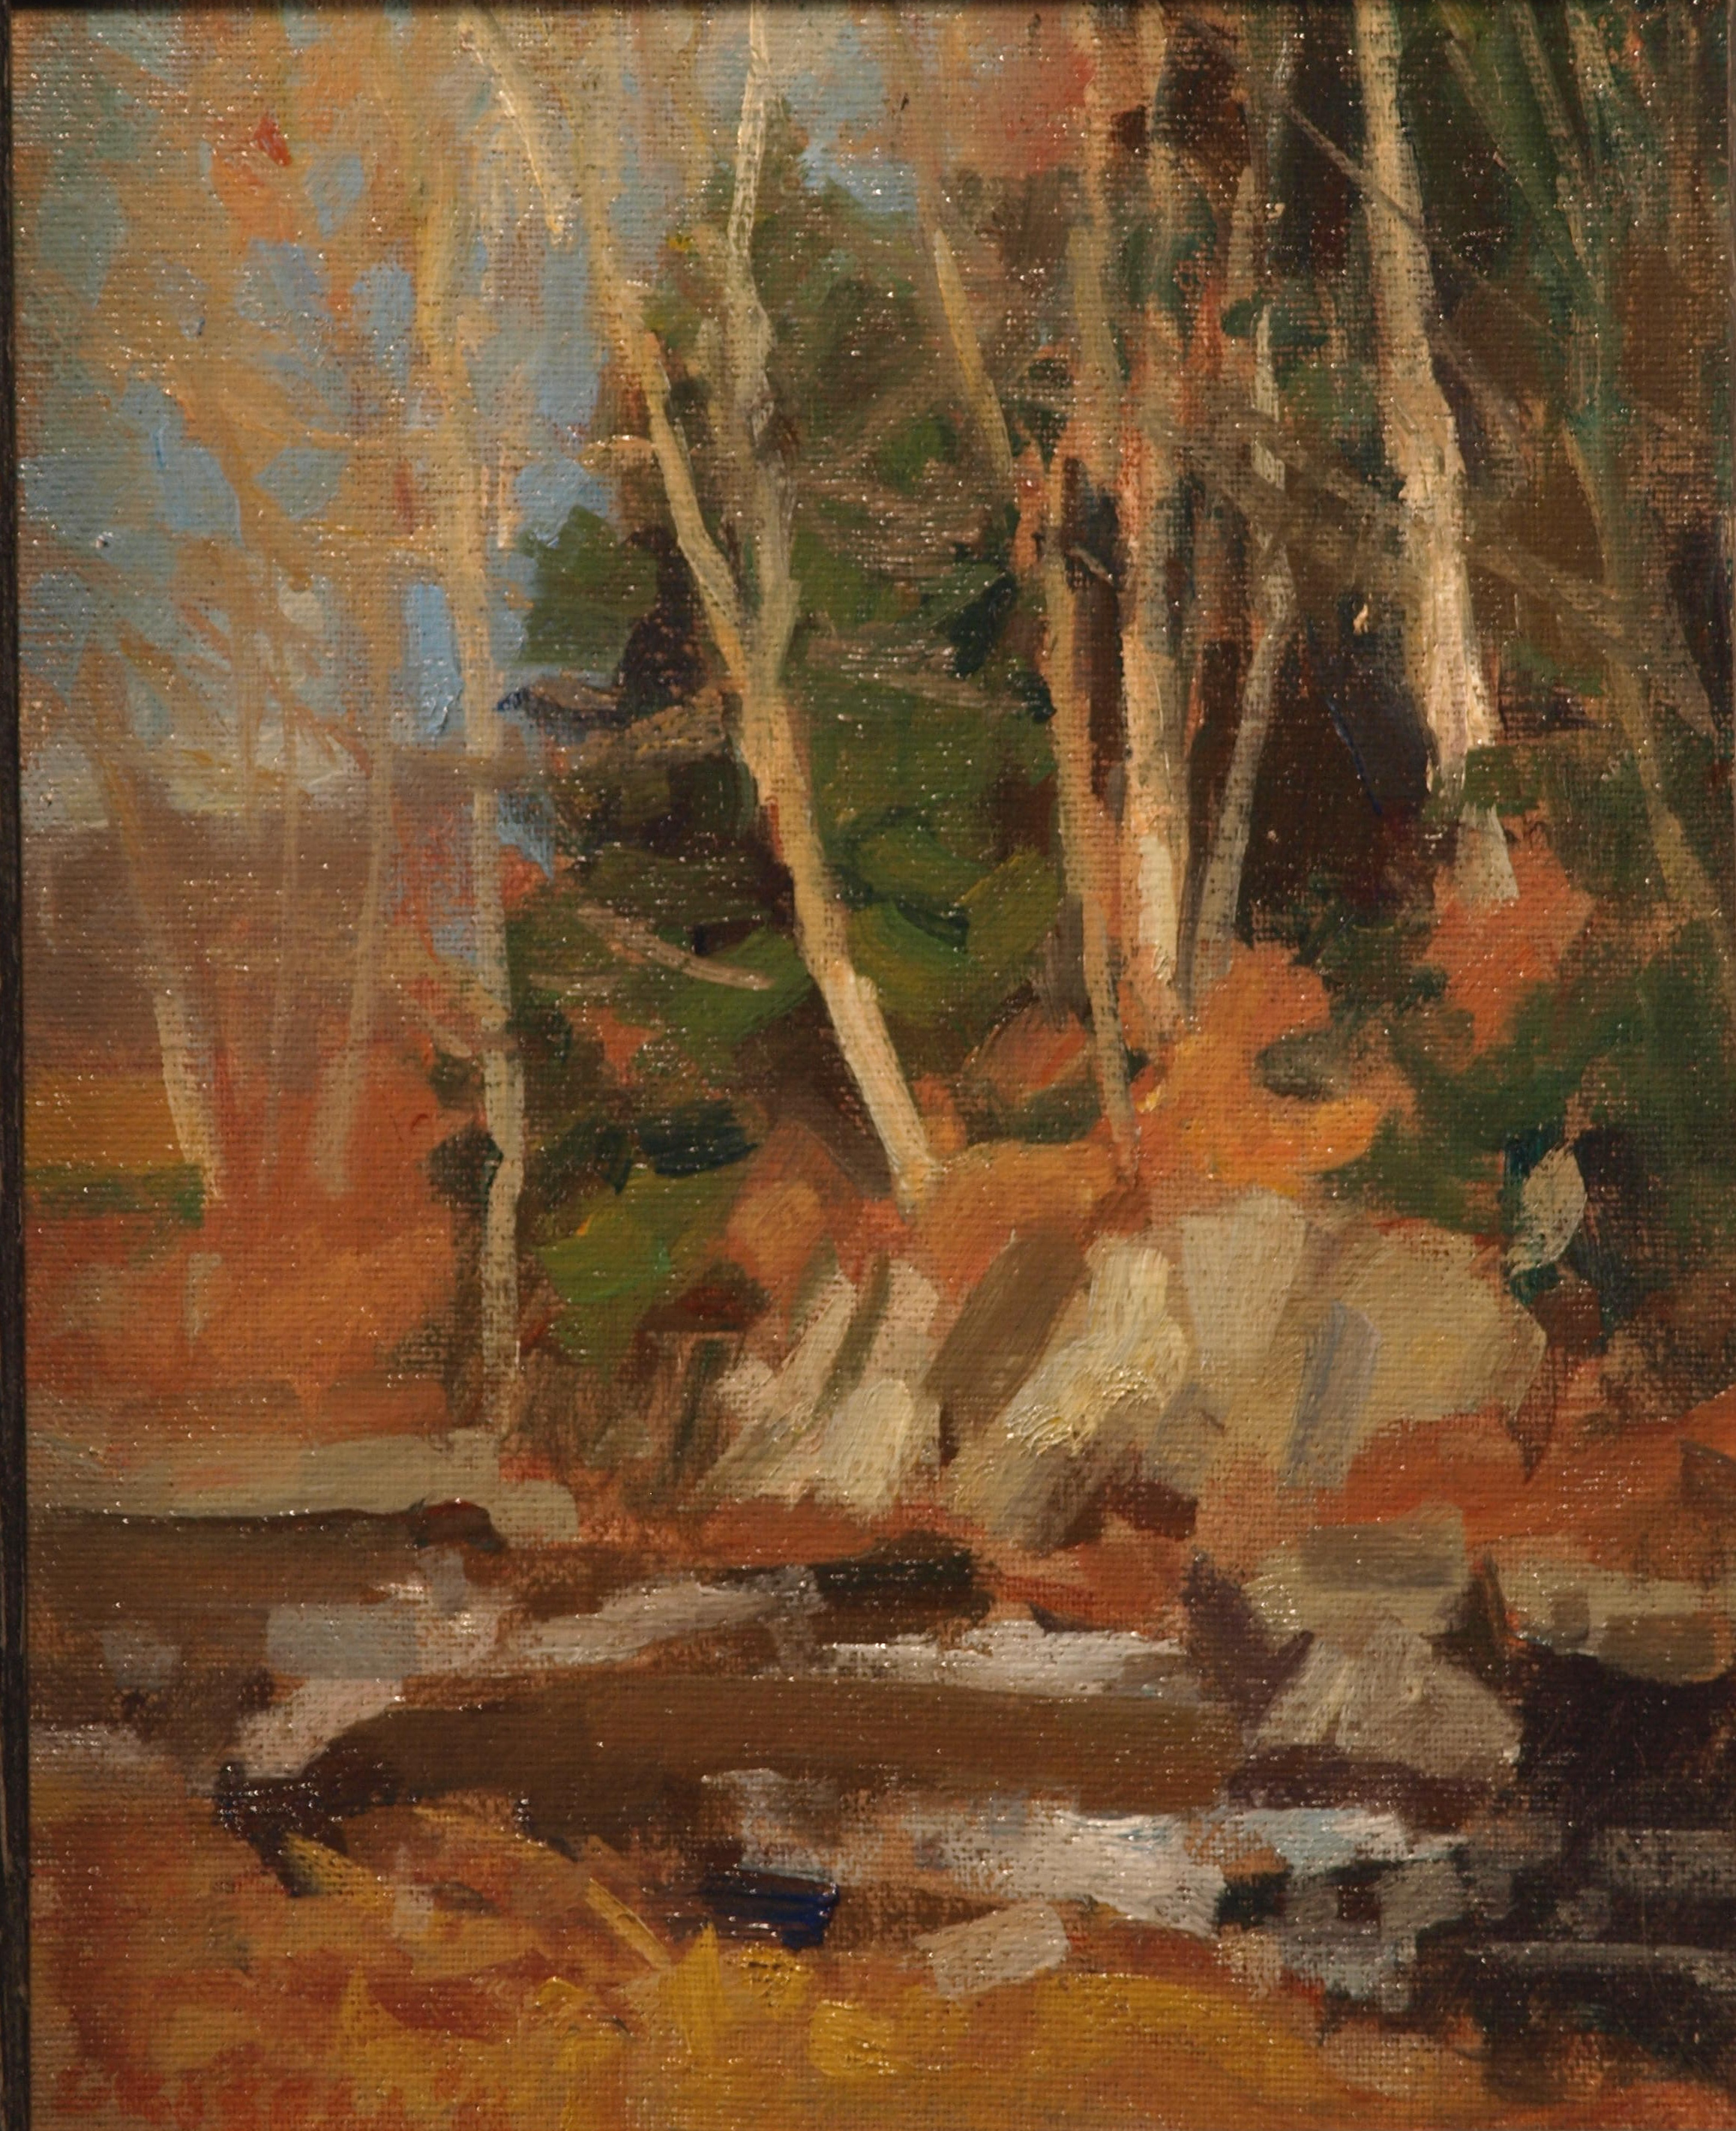 Earth Colors, Oil on Canvas on Panel, 10 x 8 Inches, by Susan Grisell, $150